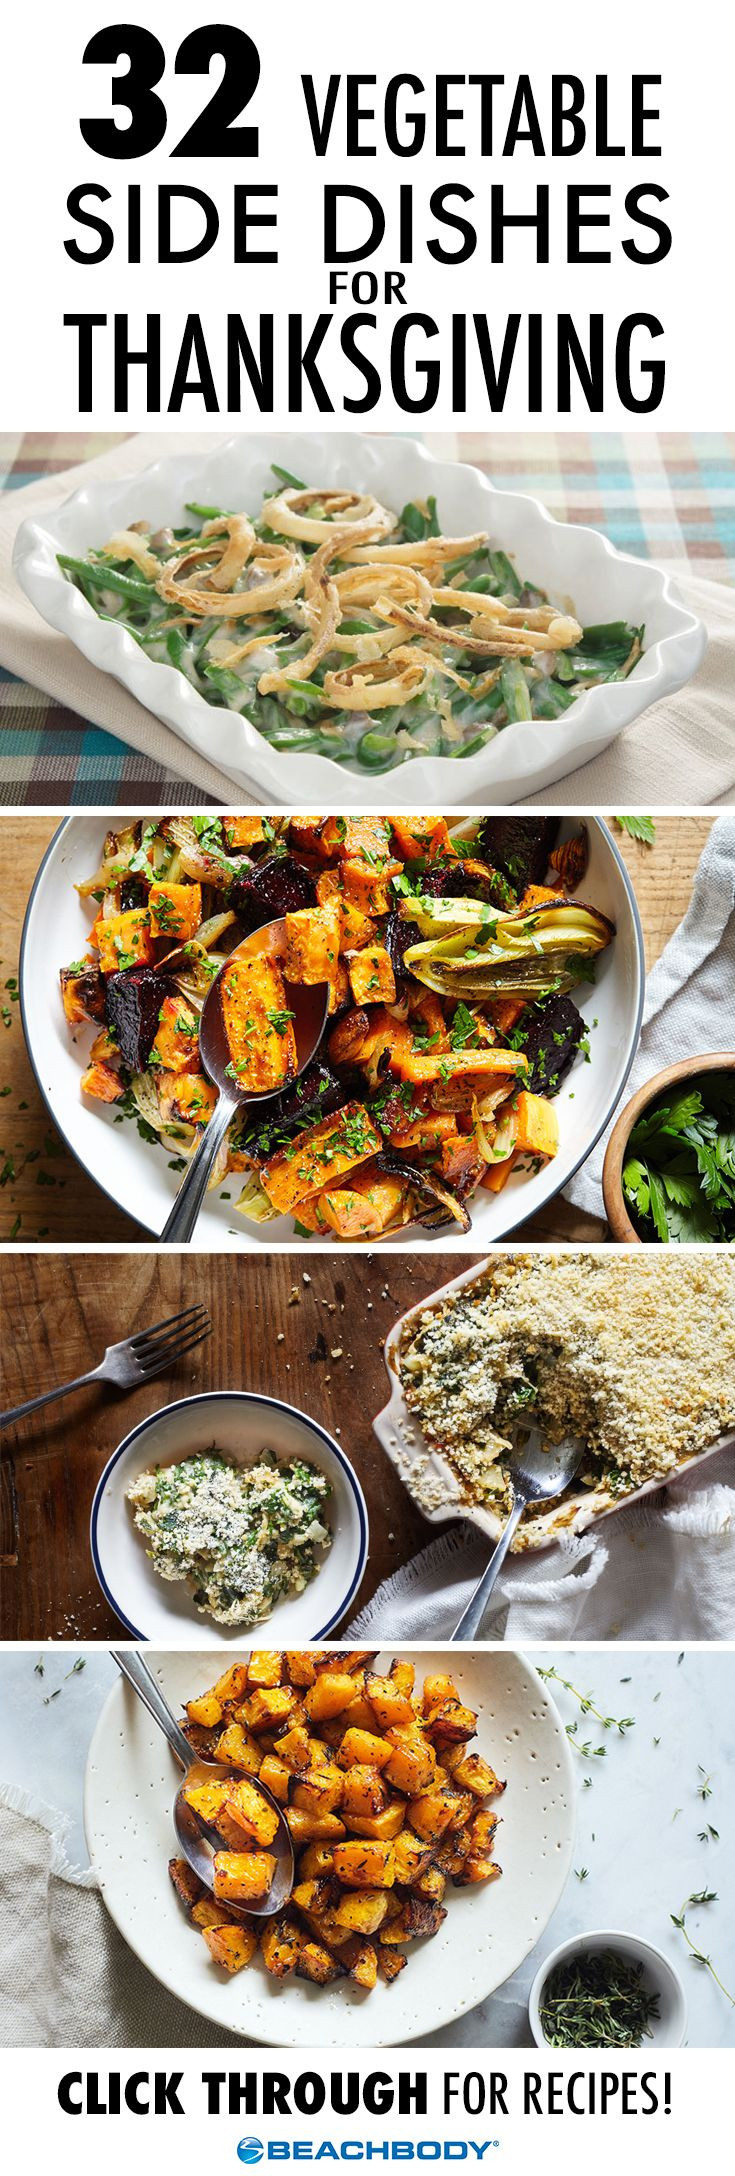 Vegetable Side Dishes For Thanksgiving  837 best images about Healthy Recipes on Pinterest